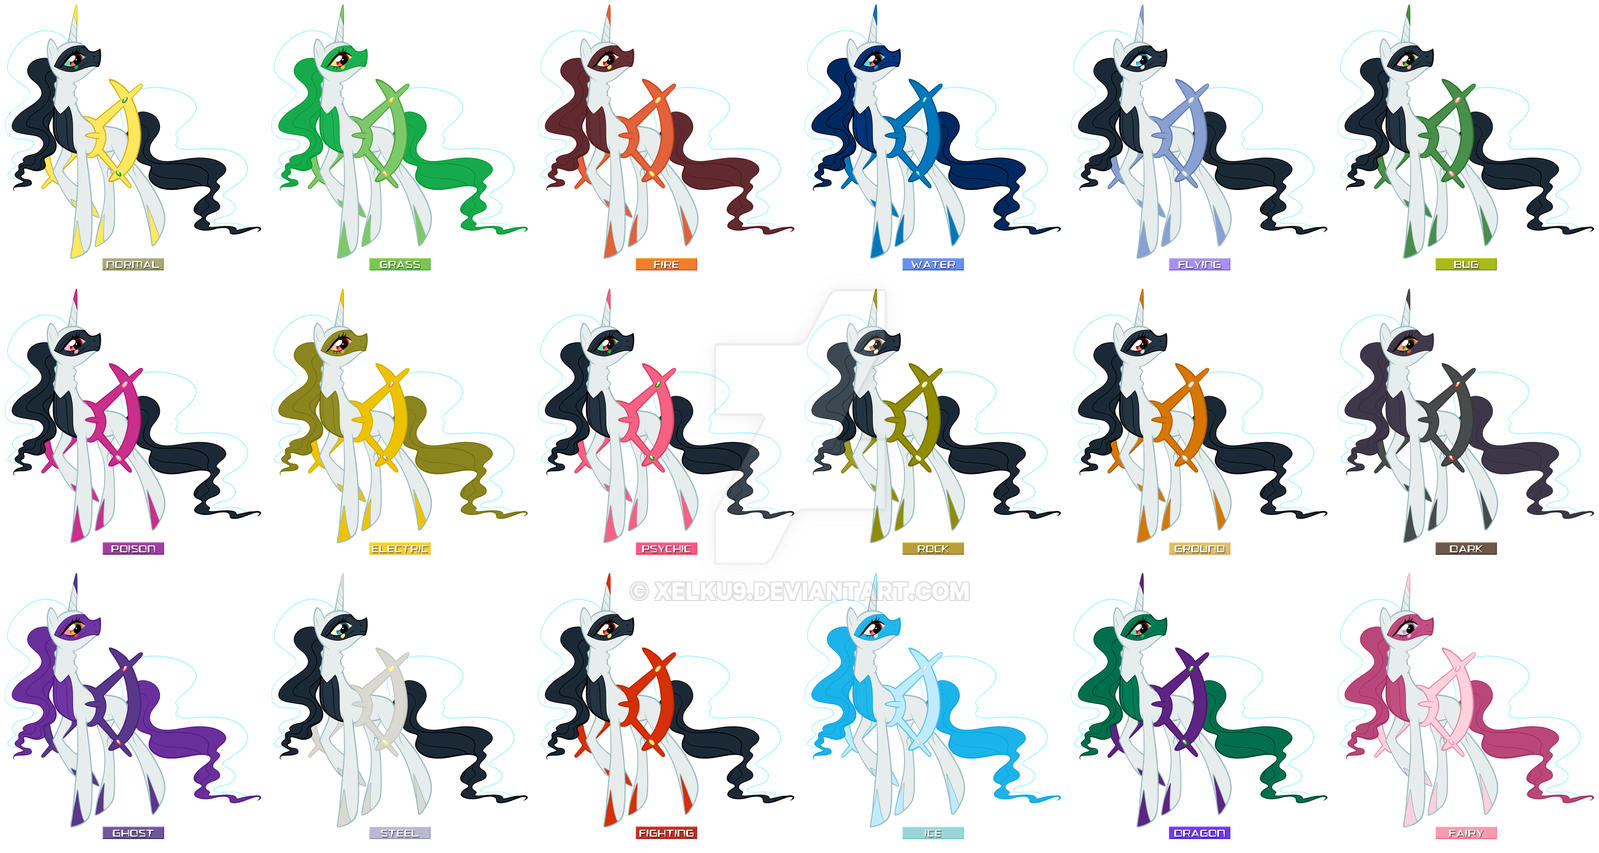 Pony Arceus All Forms By Xelku9 On Deviantart